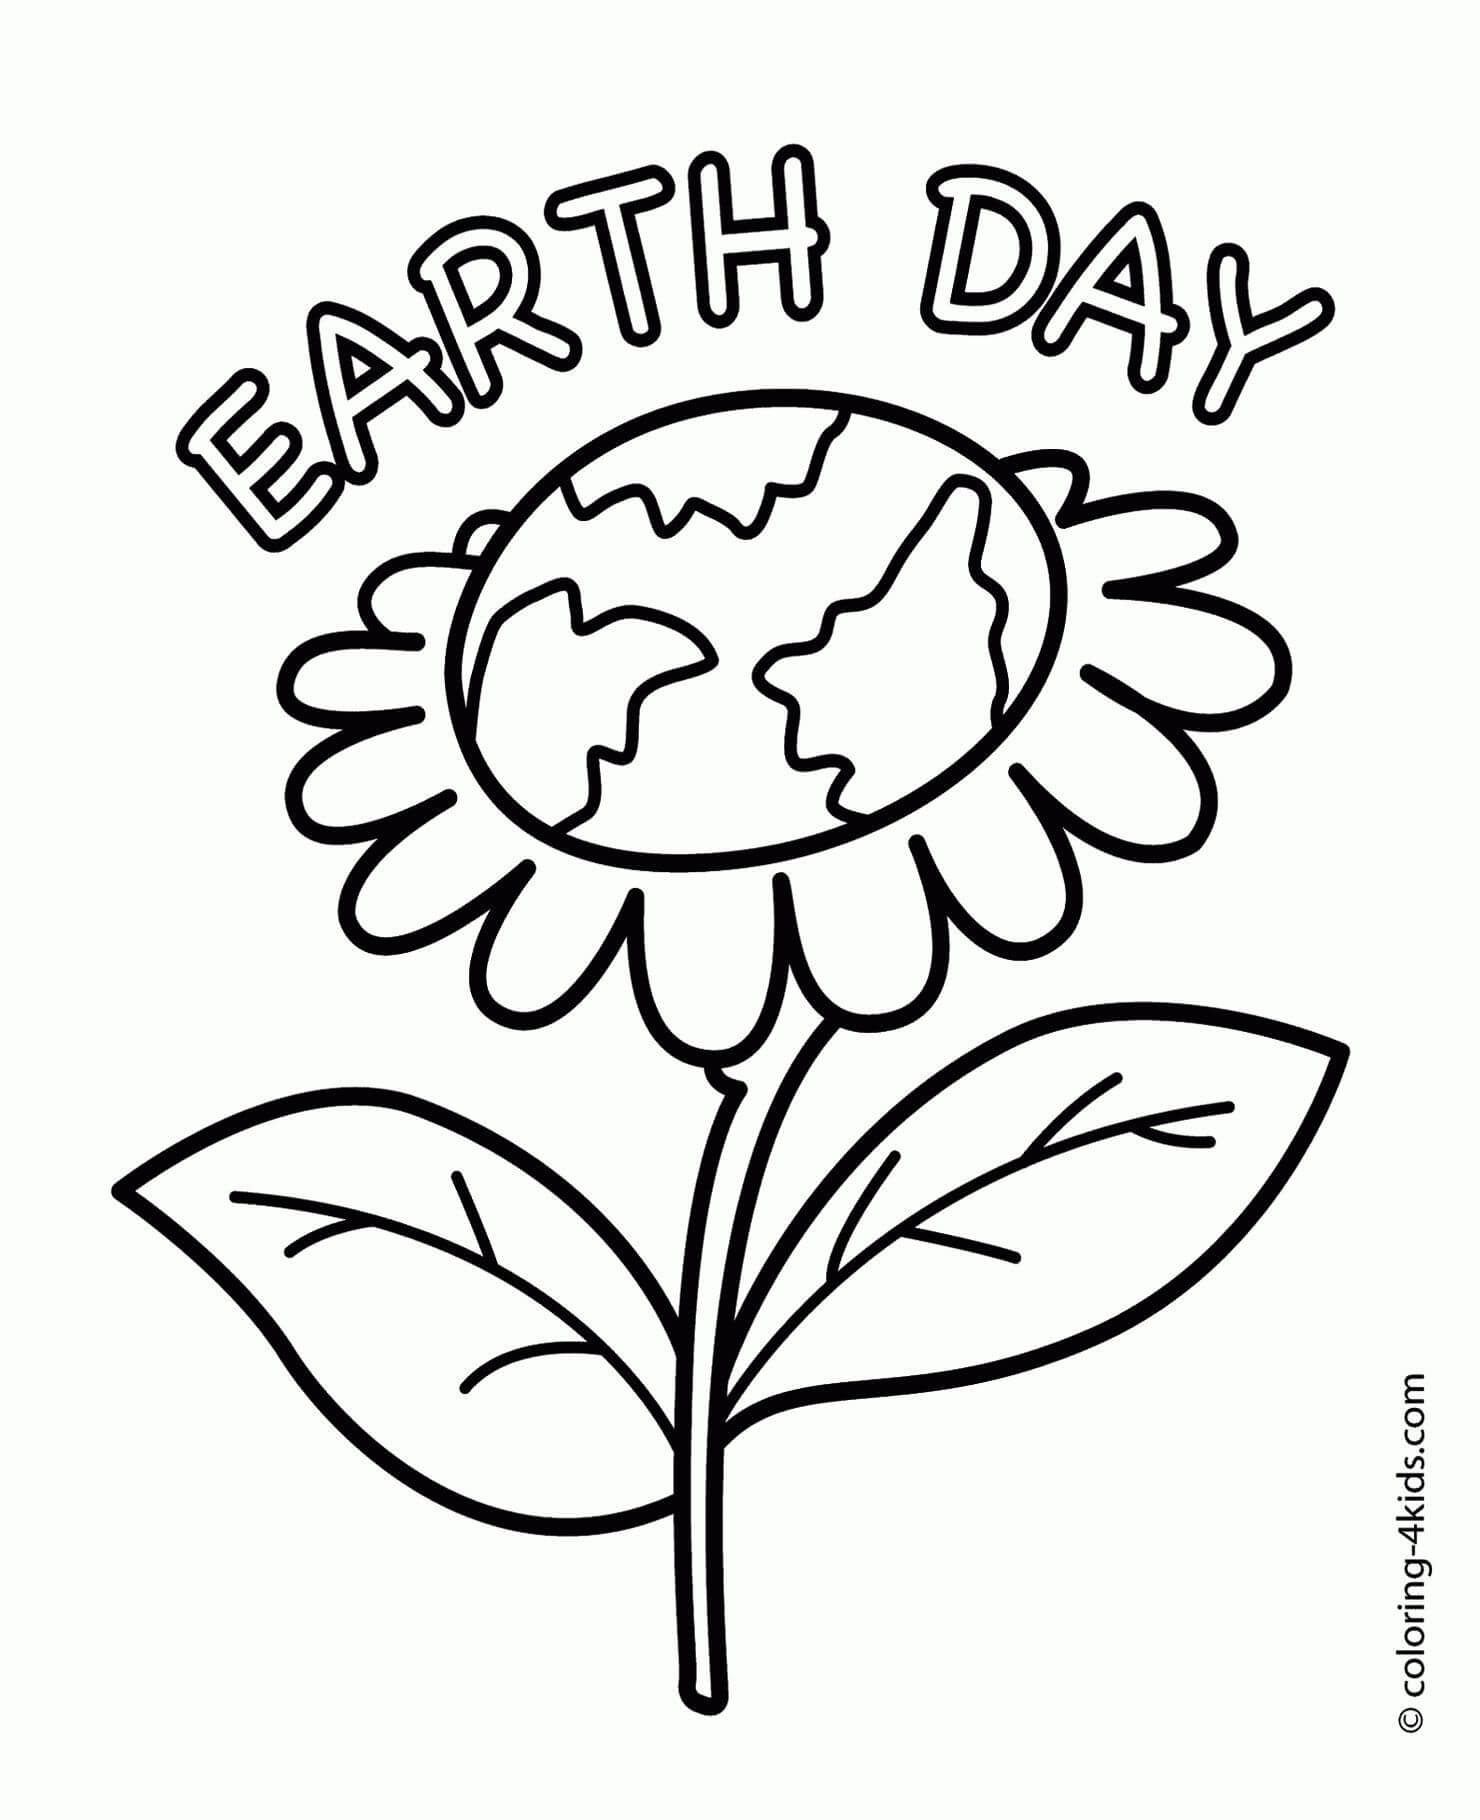 21 printable earth day coloring pages holiday vault